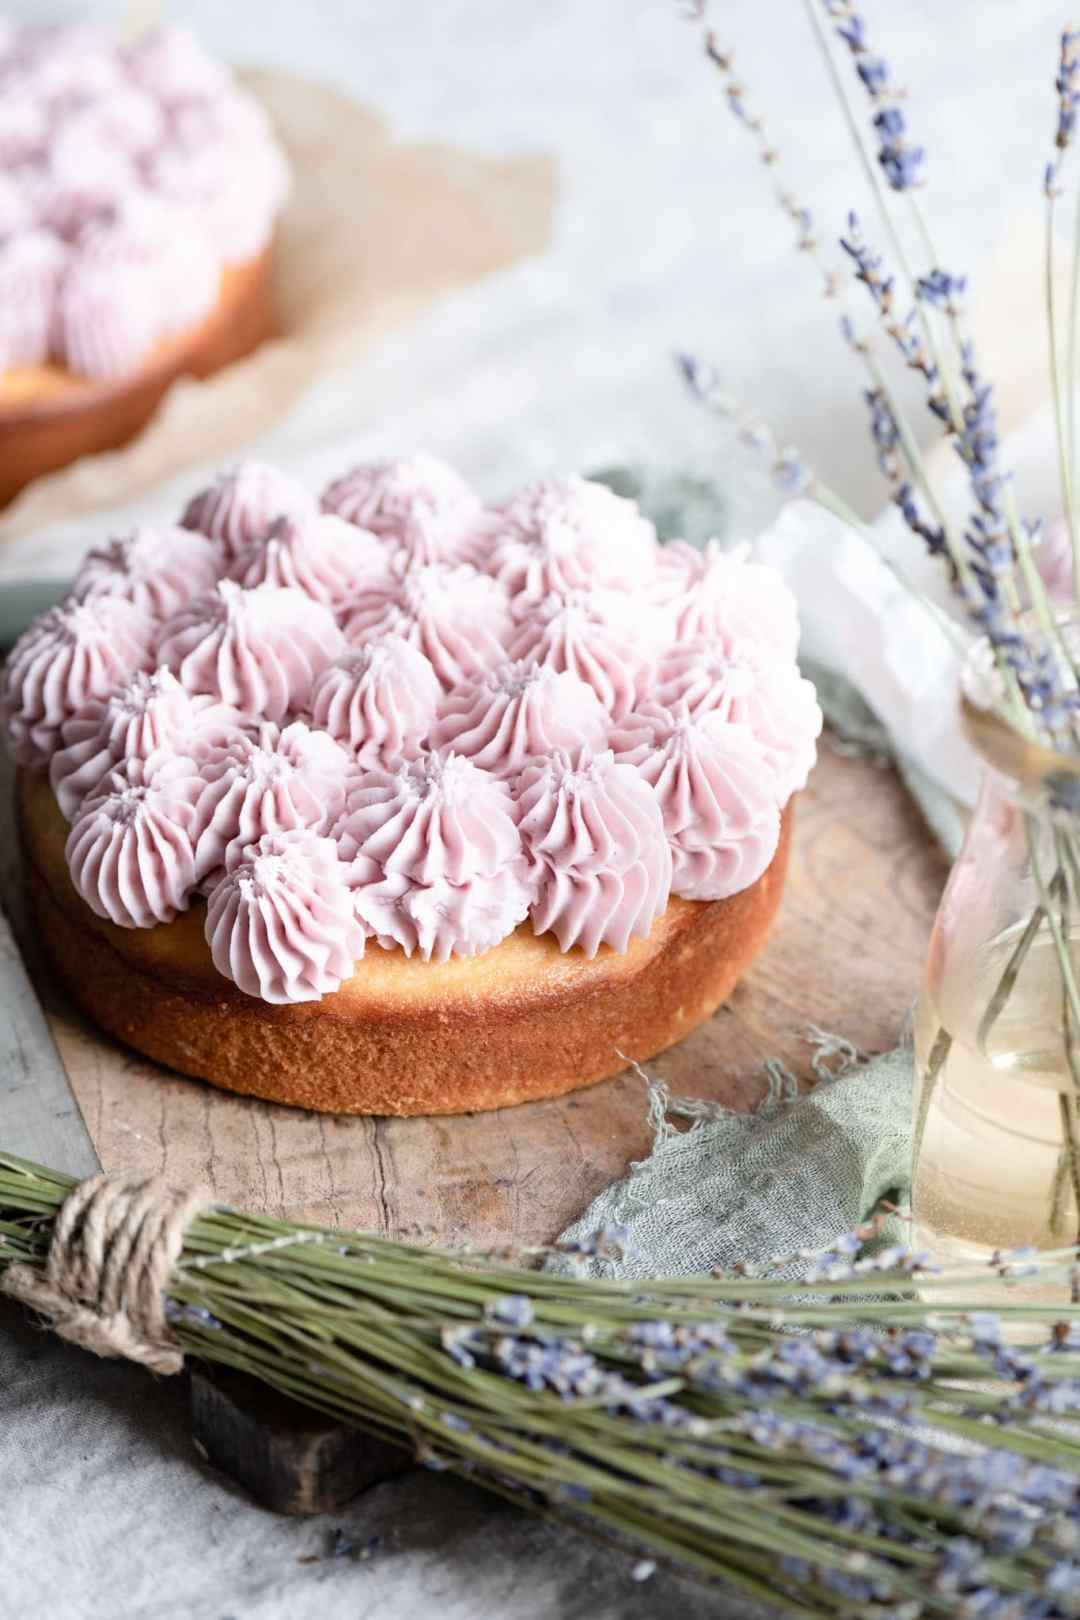 Fluffy white cake with purple frosting.